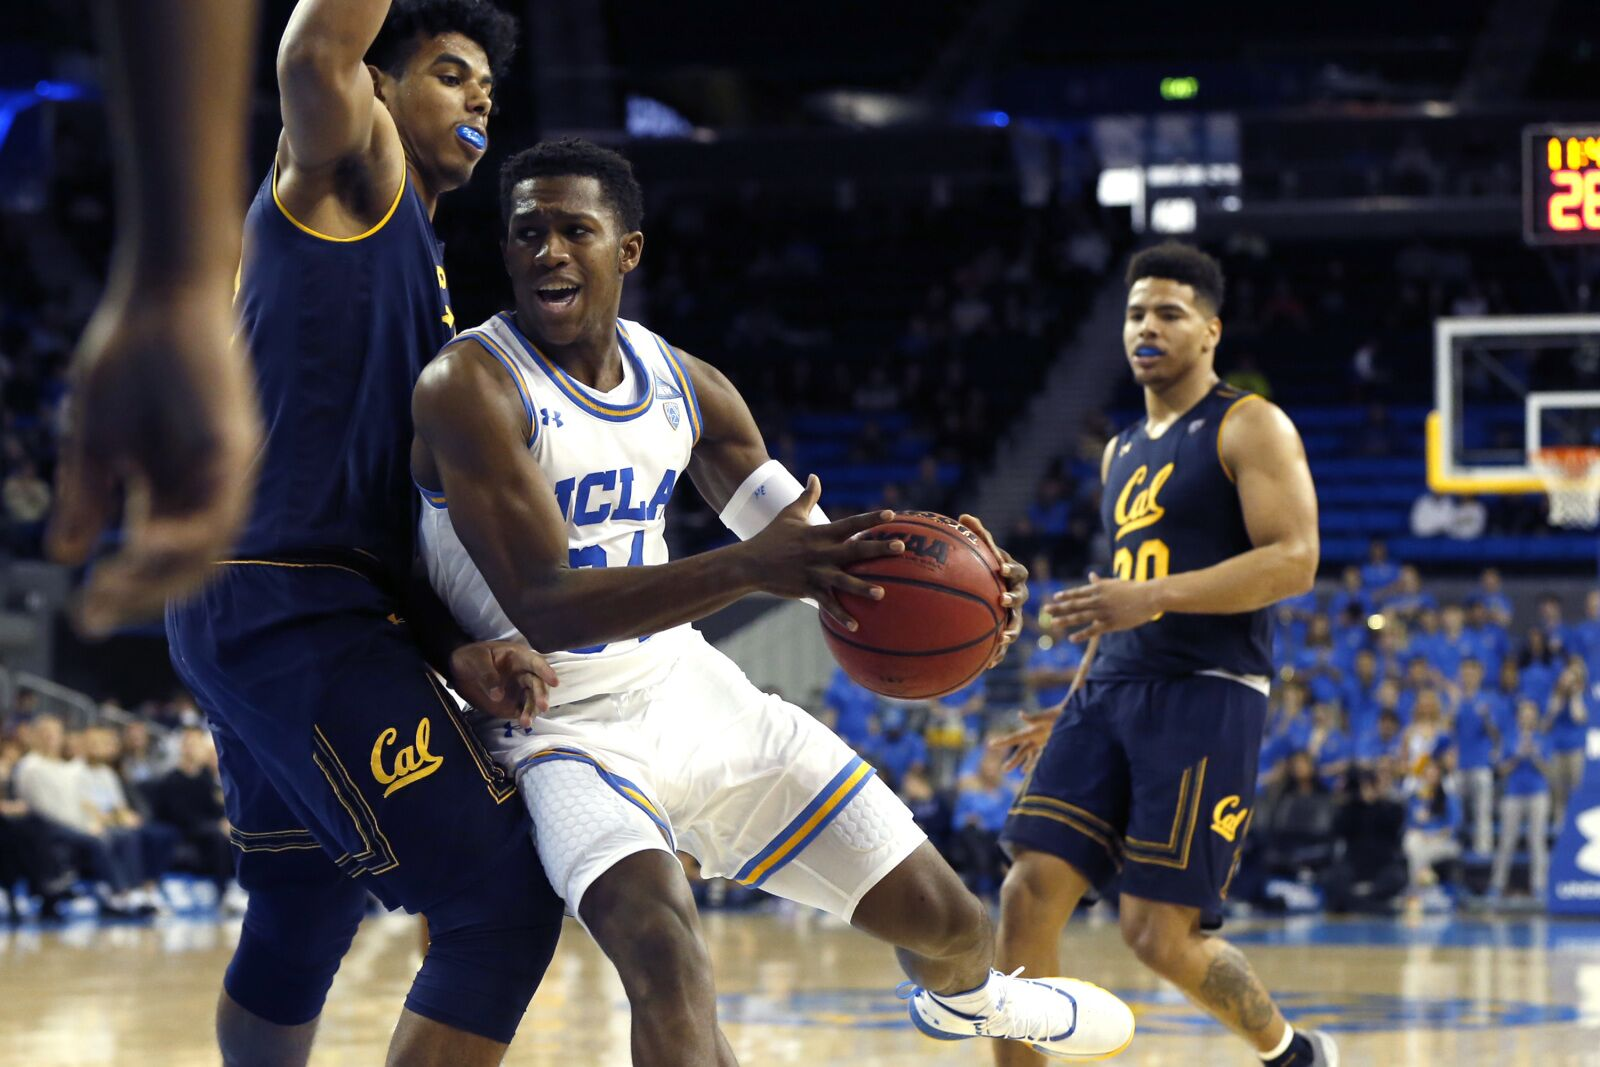 UCLA Basketball: David Singleton could be the key to success in 2019-20